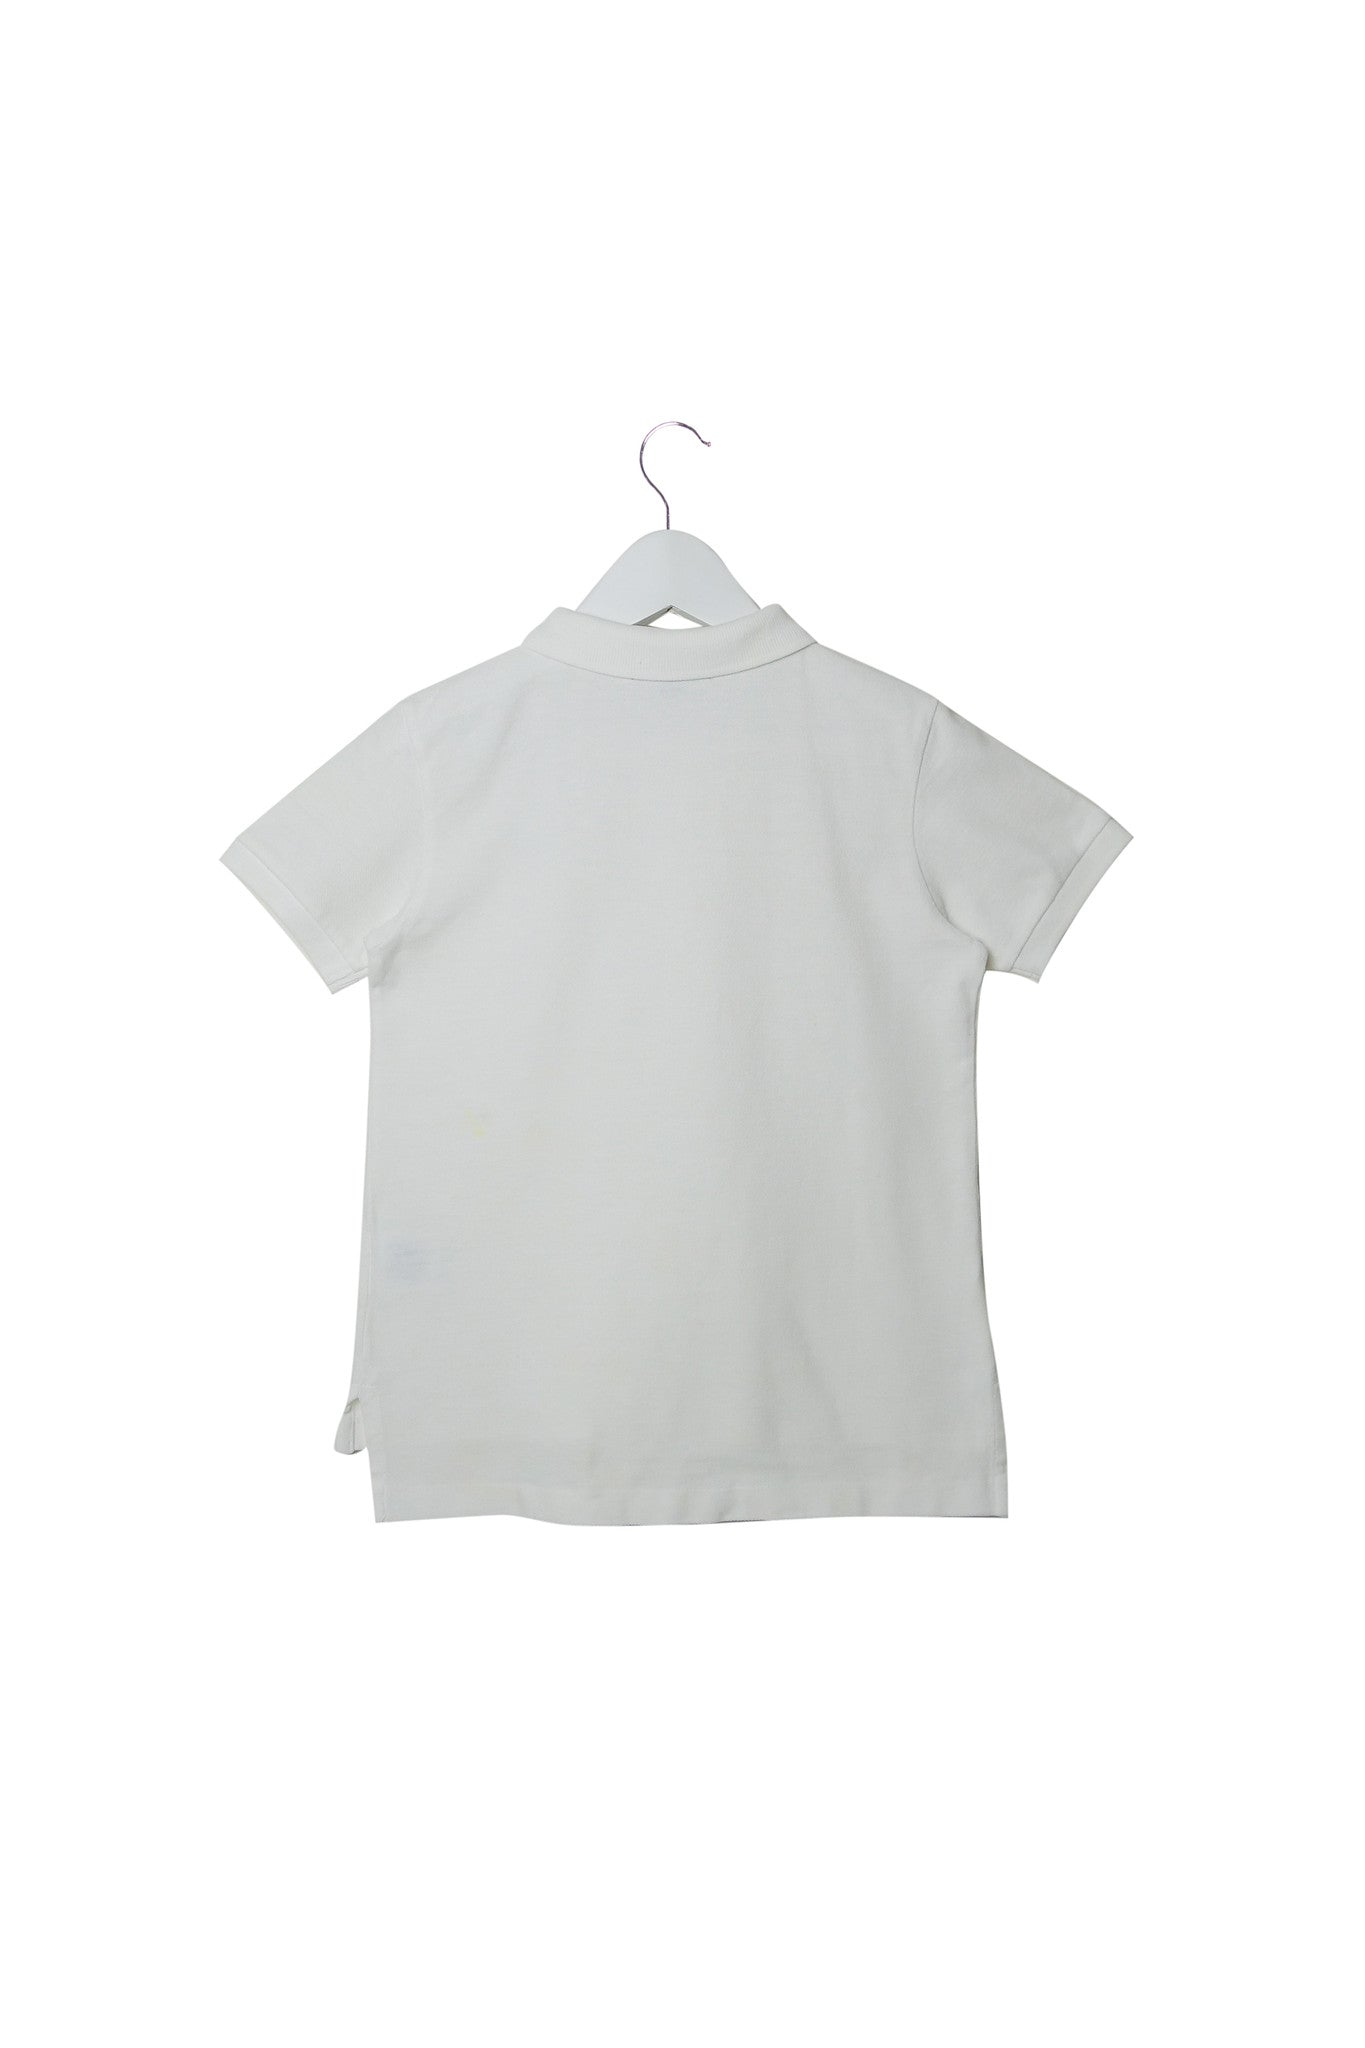 10002893 Polo Ralph Lauren Kids~Polo 5T at Retykle